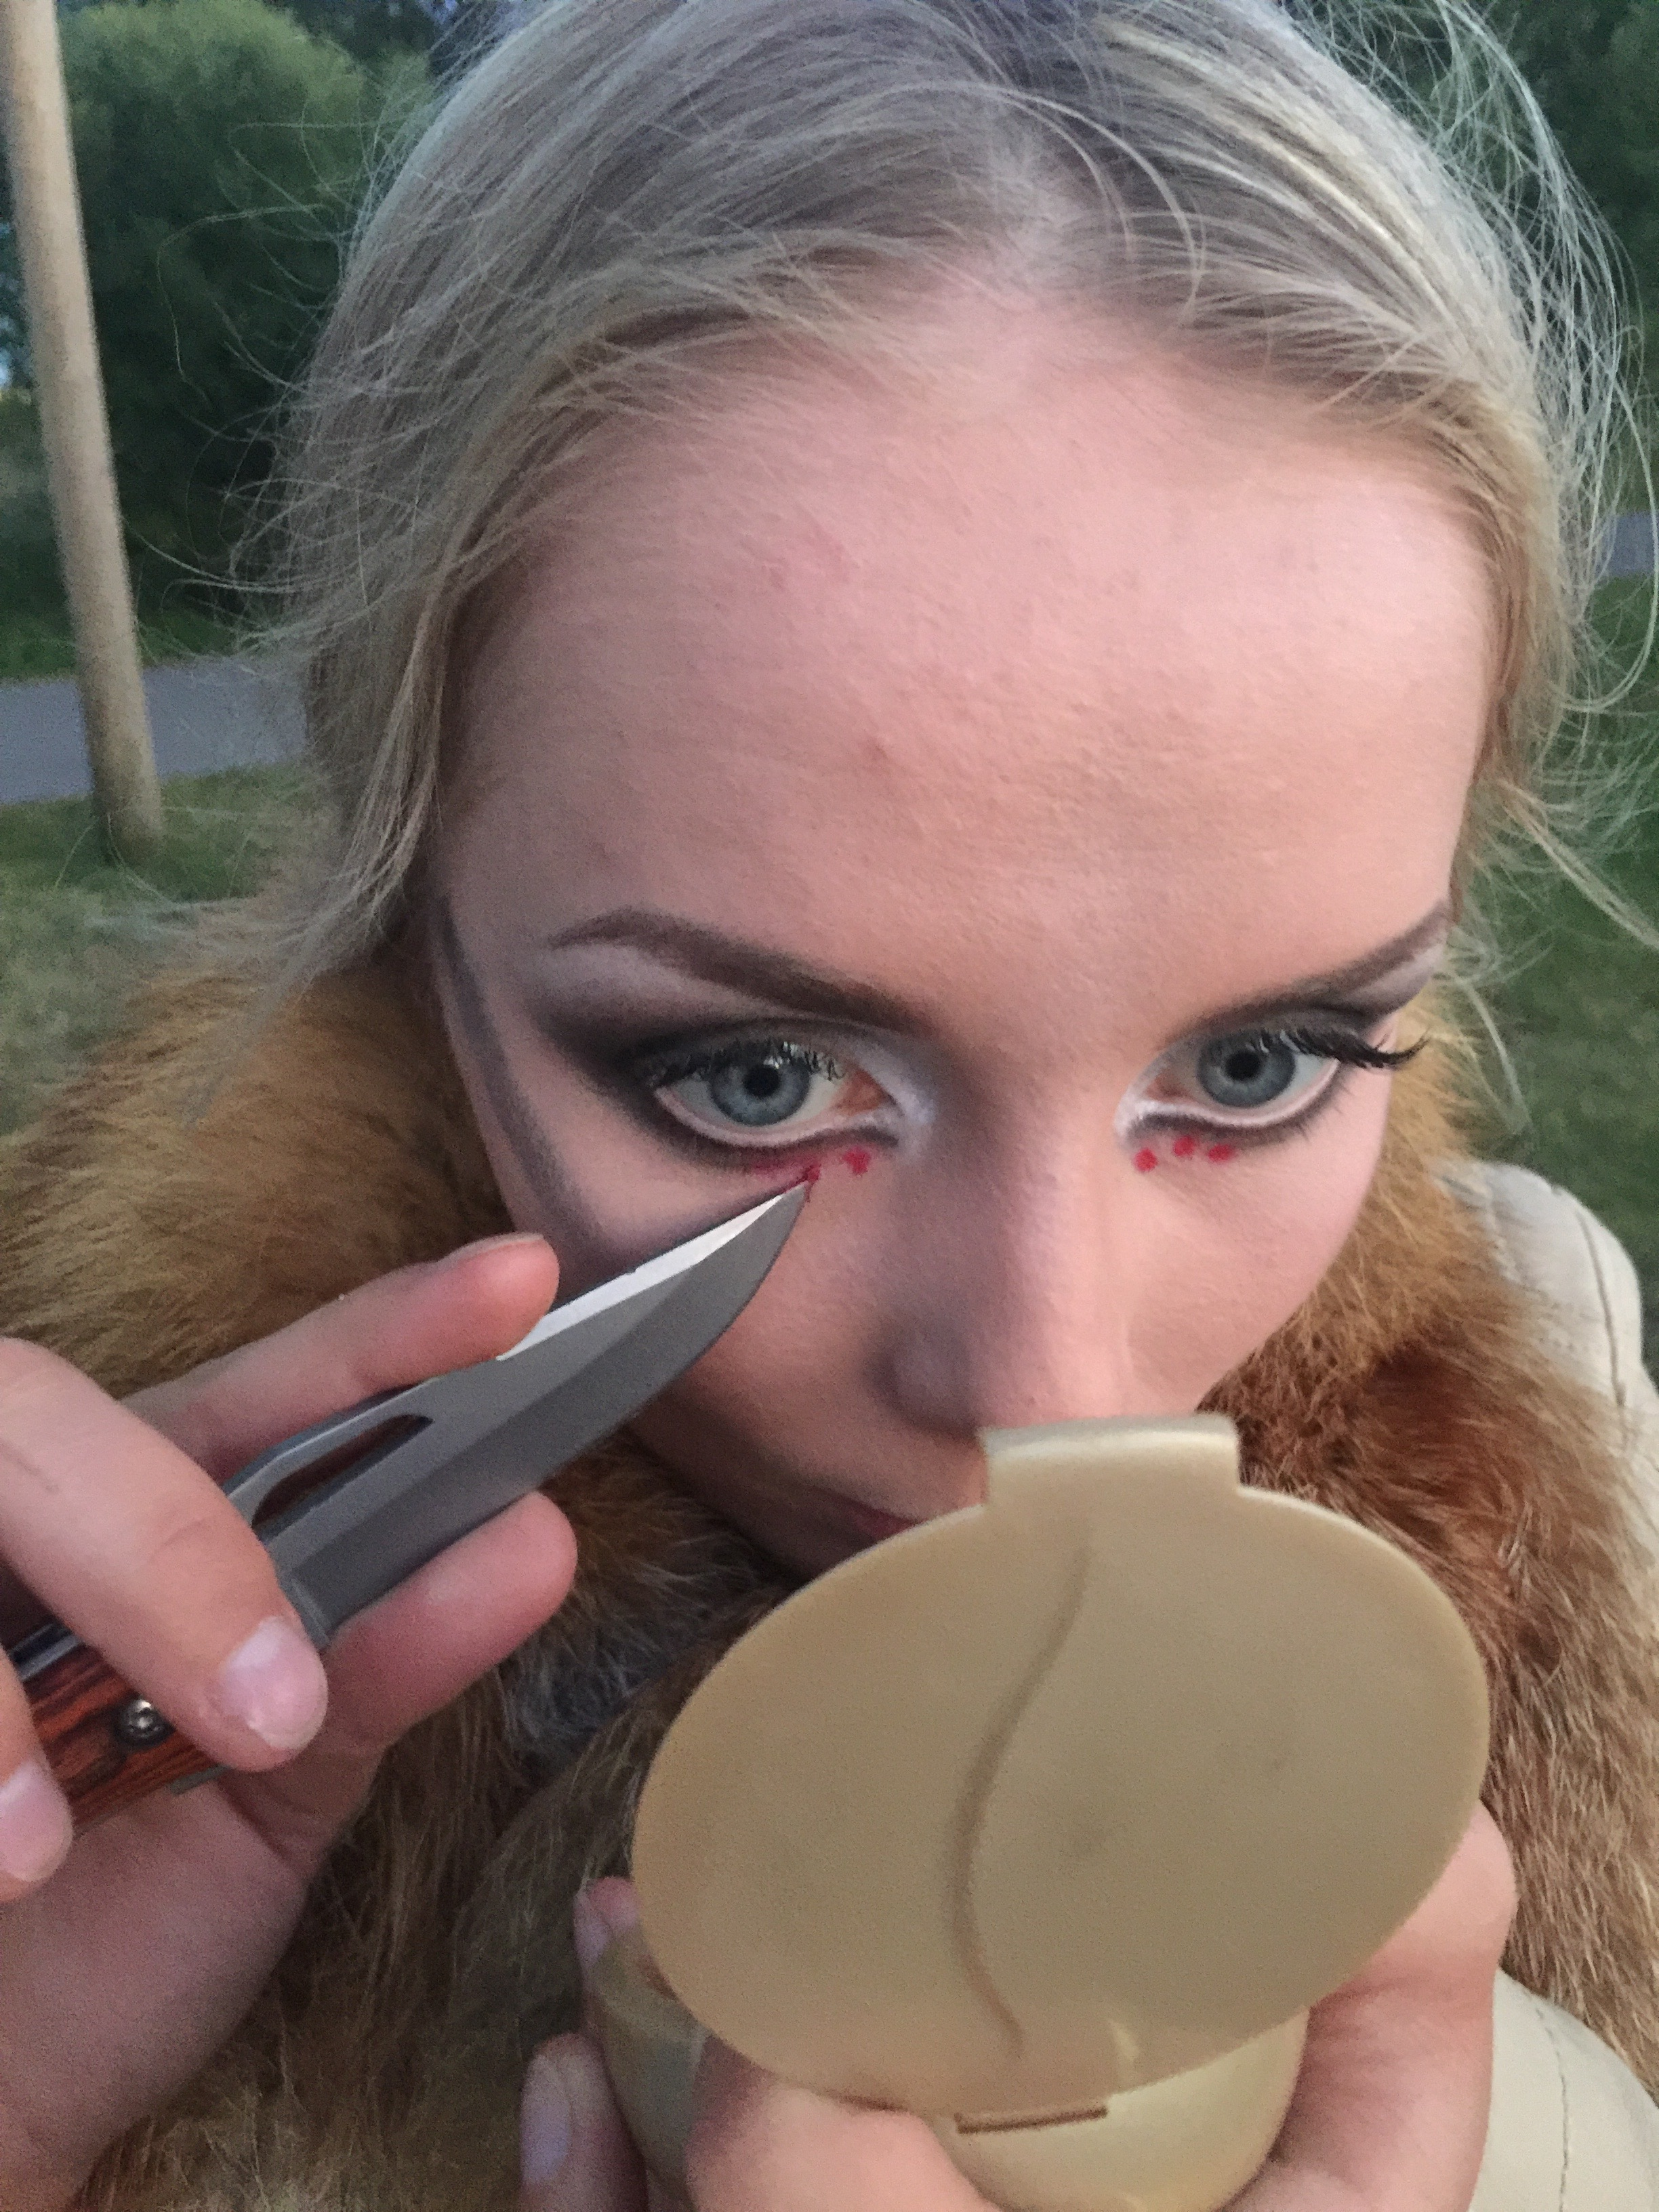 This definitely is not Grete trying to reapply makeup with a knife.